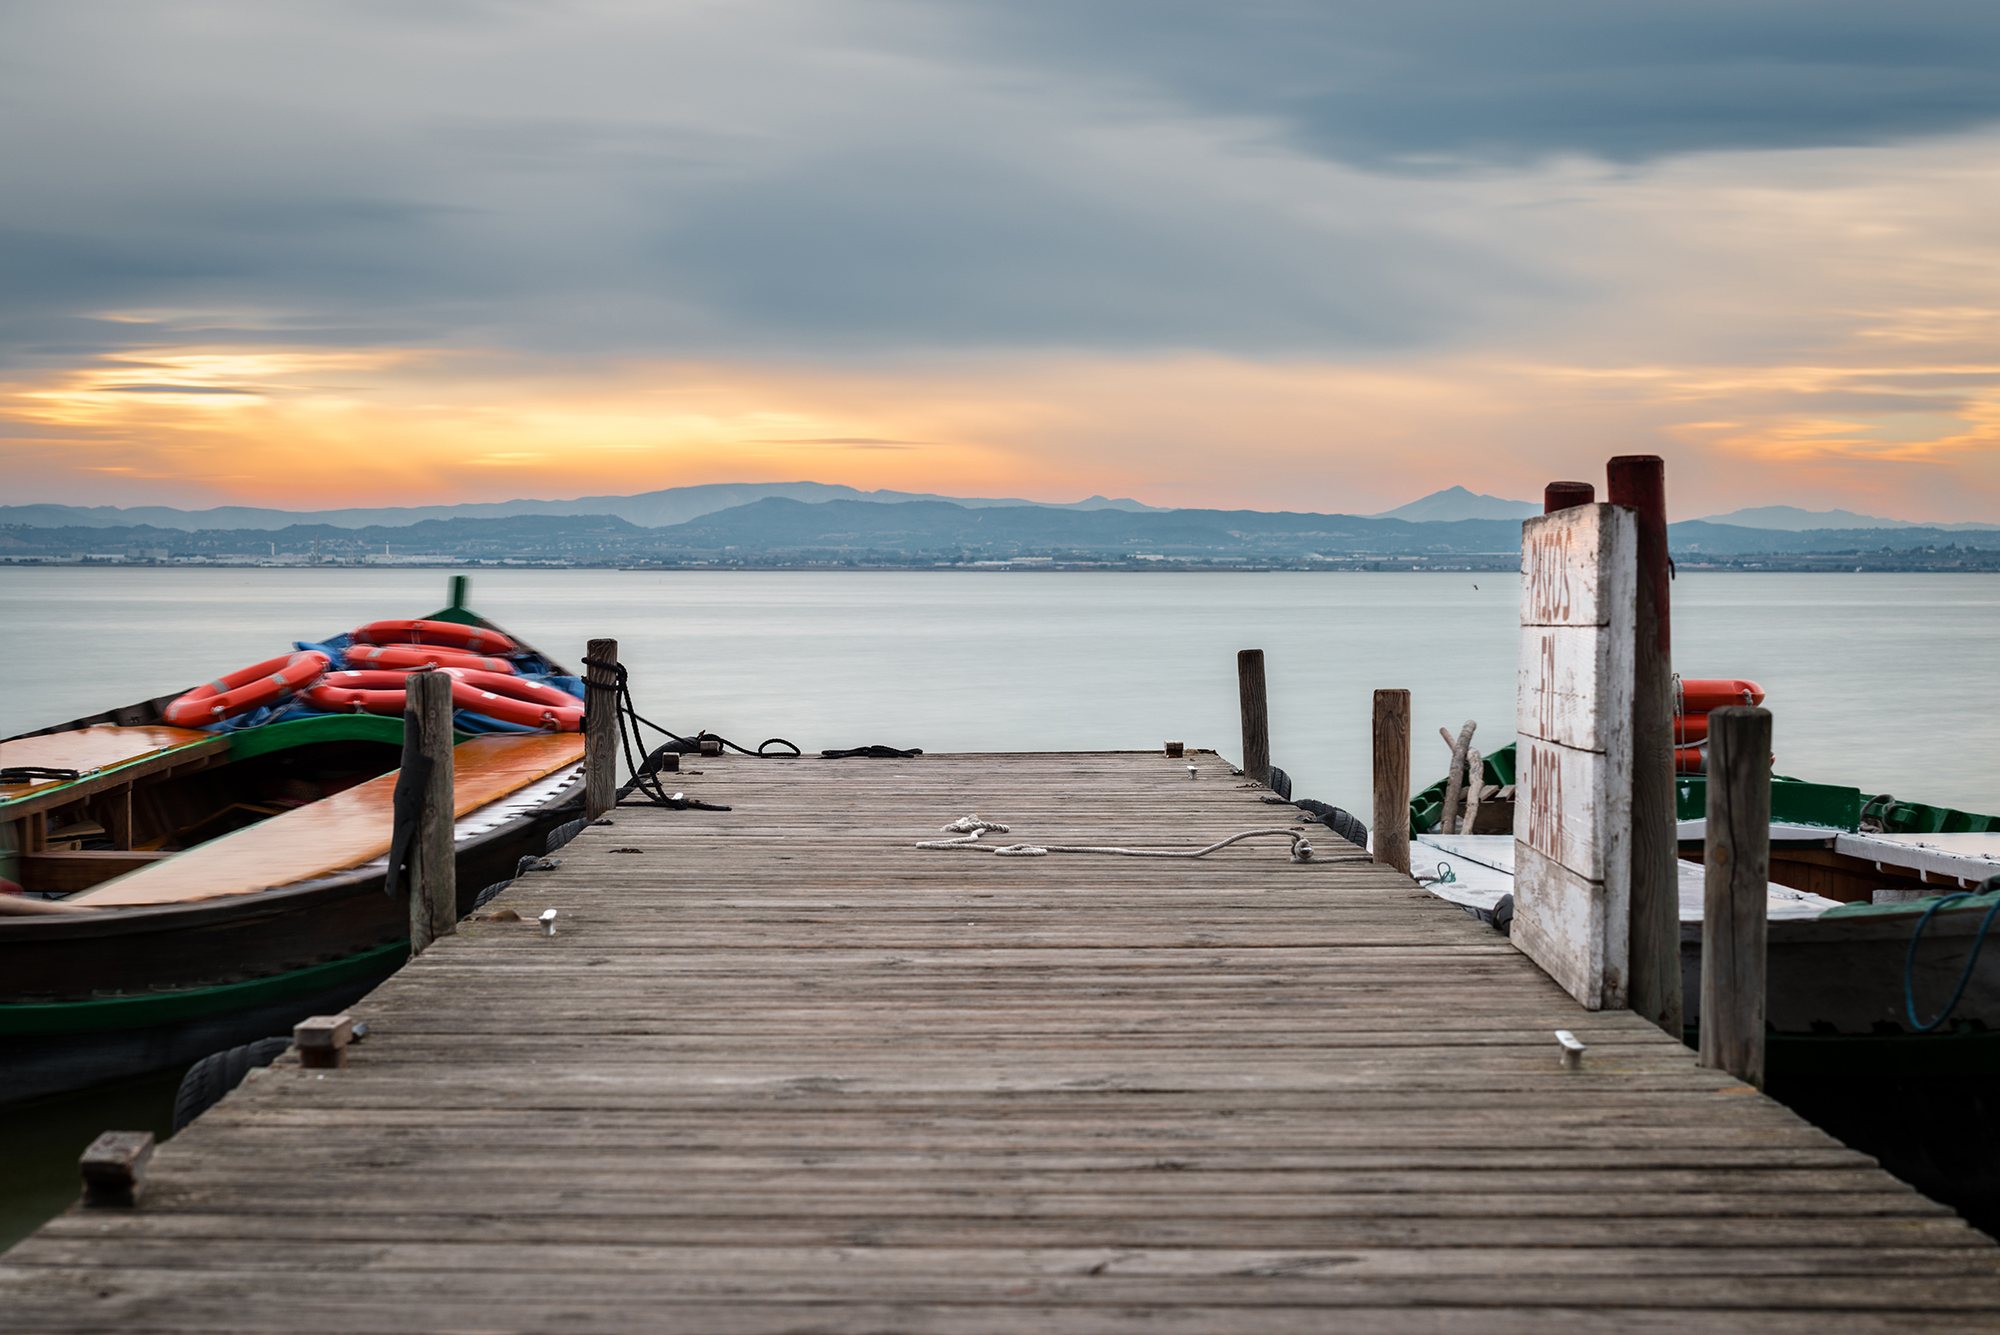 Jetty and small wooden boat at dusk in the Albufera in Valencia